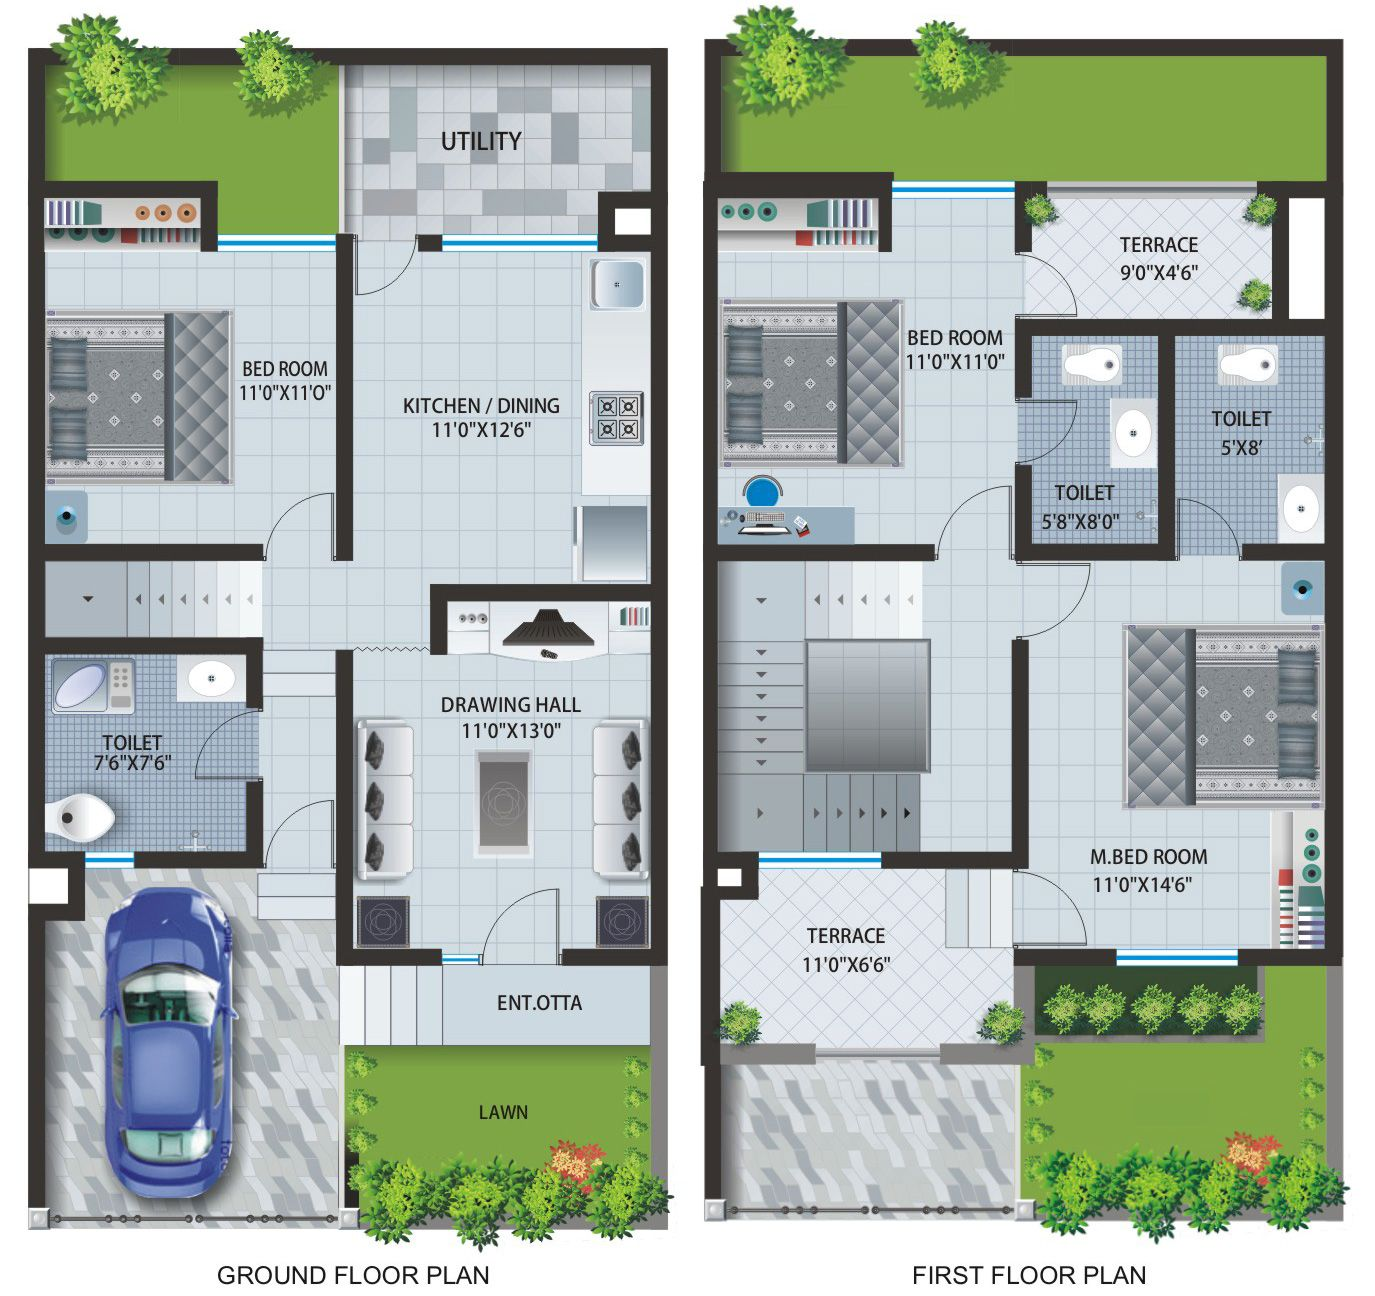 Layout design house - Floor Plans Of Apartments Row Houses At Caroline Baner